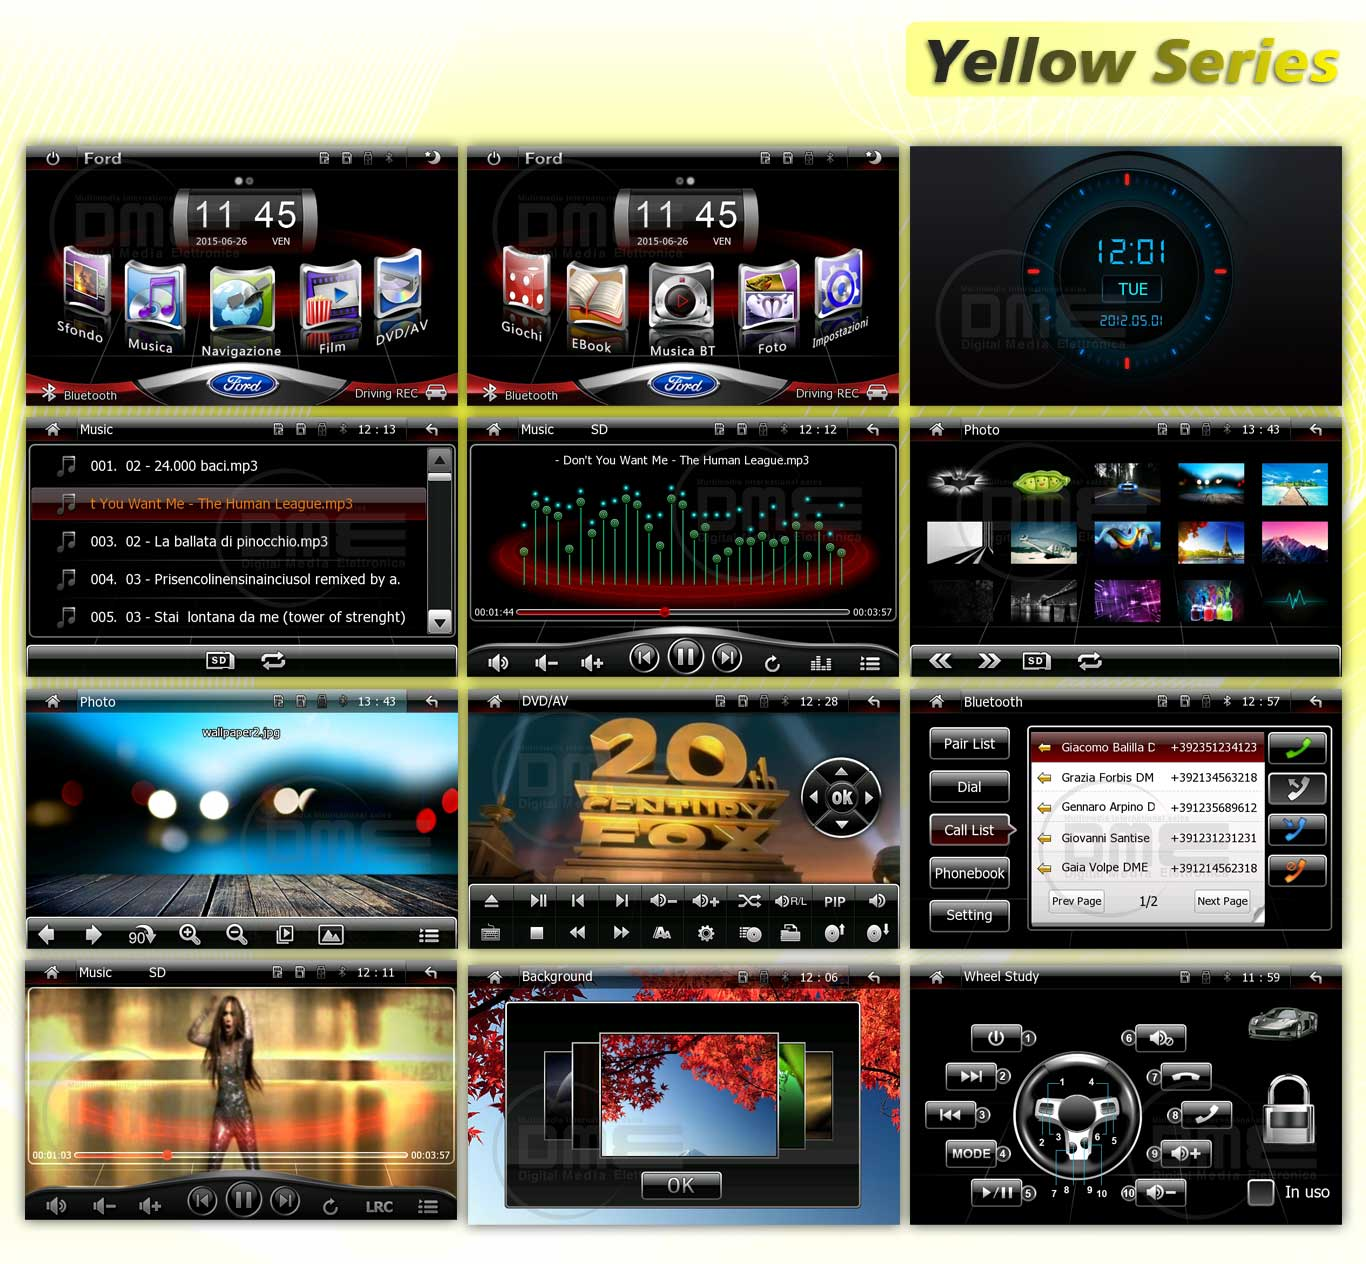 interfaccia multimediale yellow series